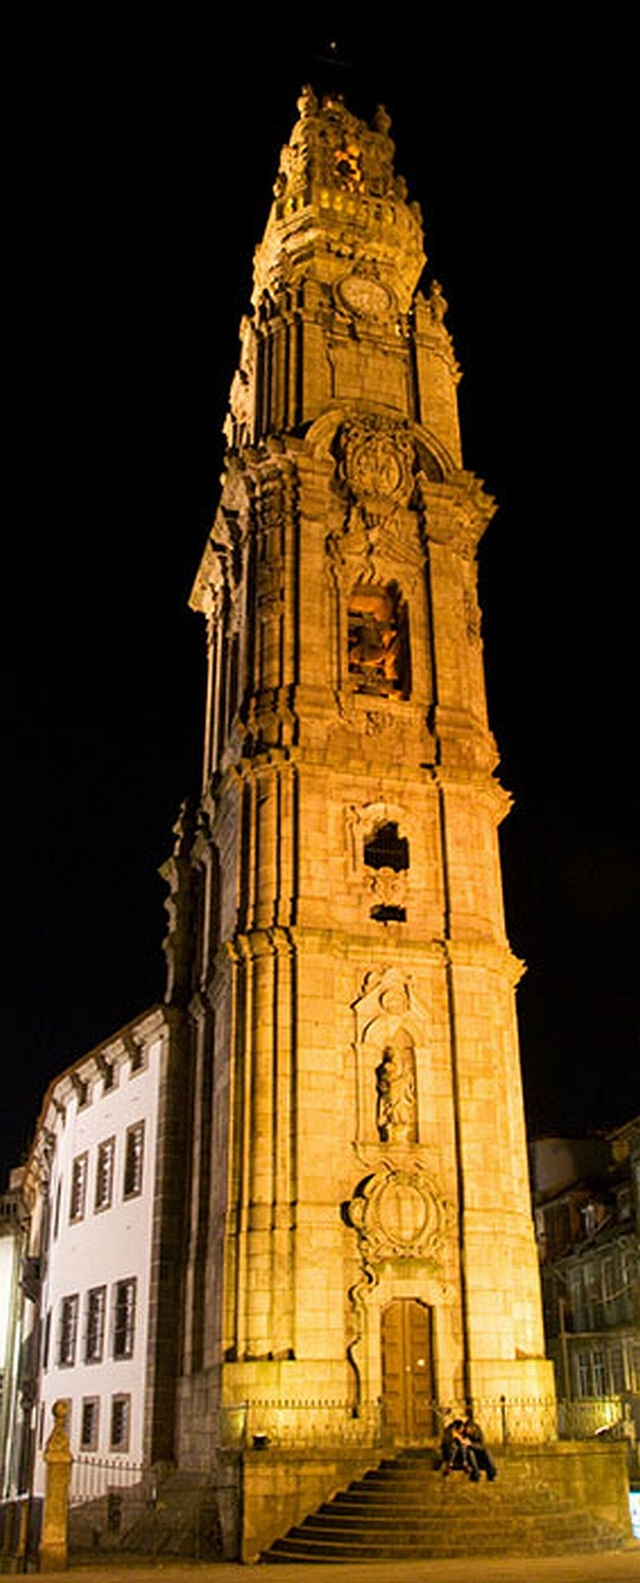 A bonita Torre dos Clérigos à noite, Porto - The beautiful Clérigos Tower by night, Oporto